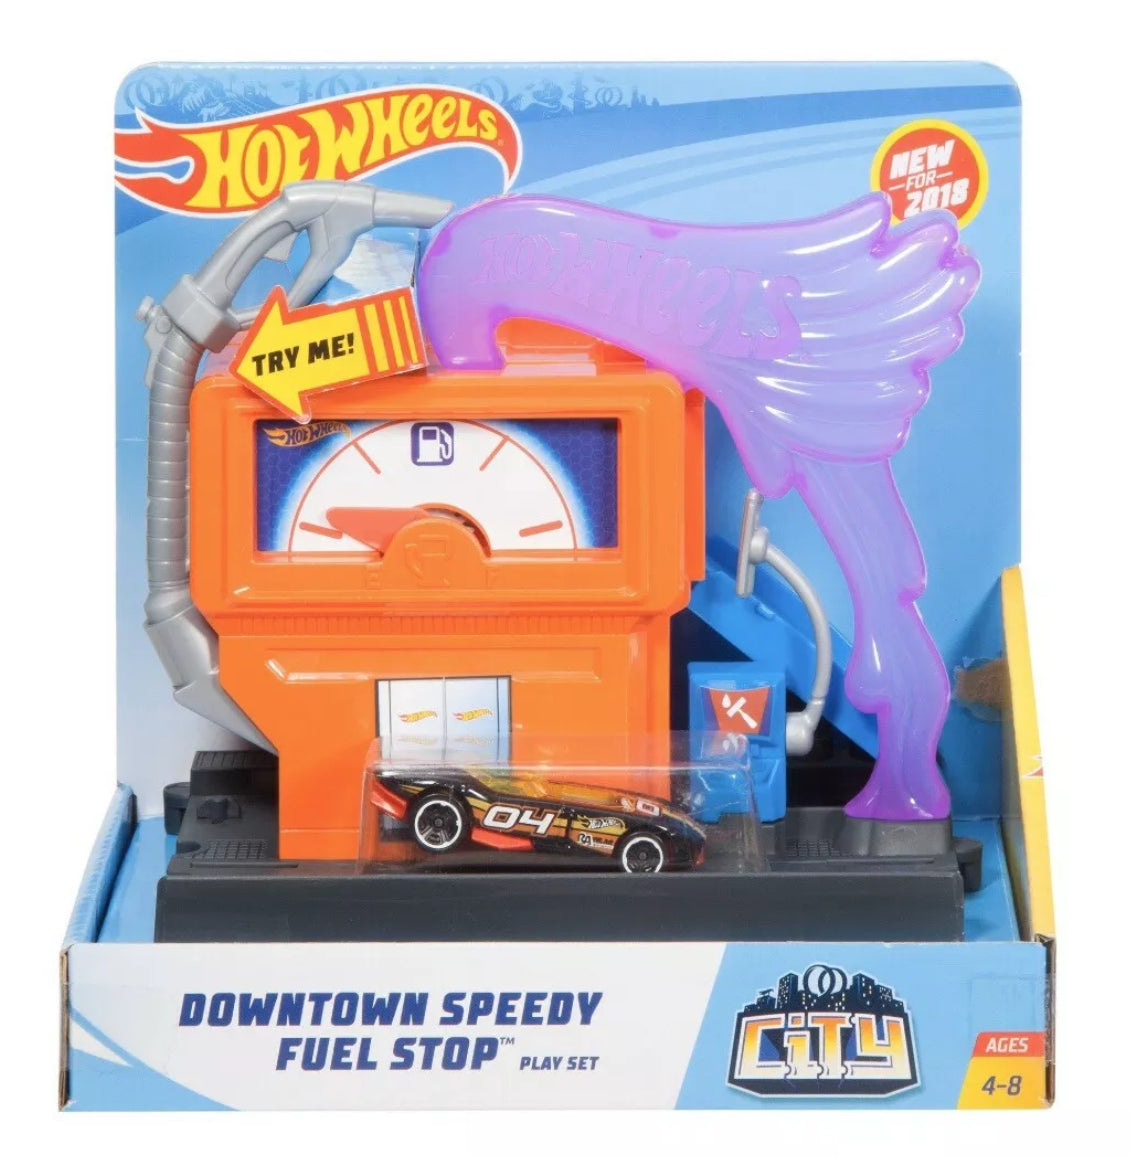 HOT WHEELS - Downtown Speedy Fuel Stop - NEW!